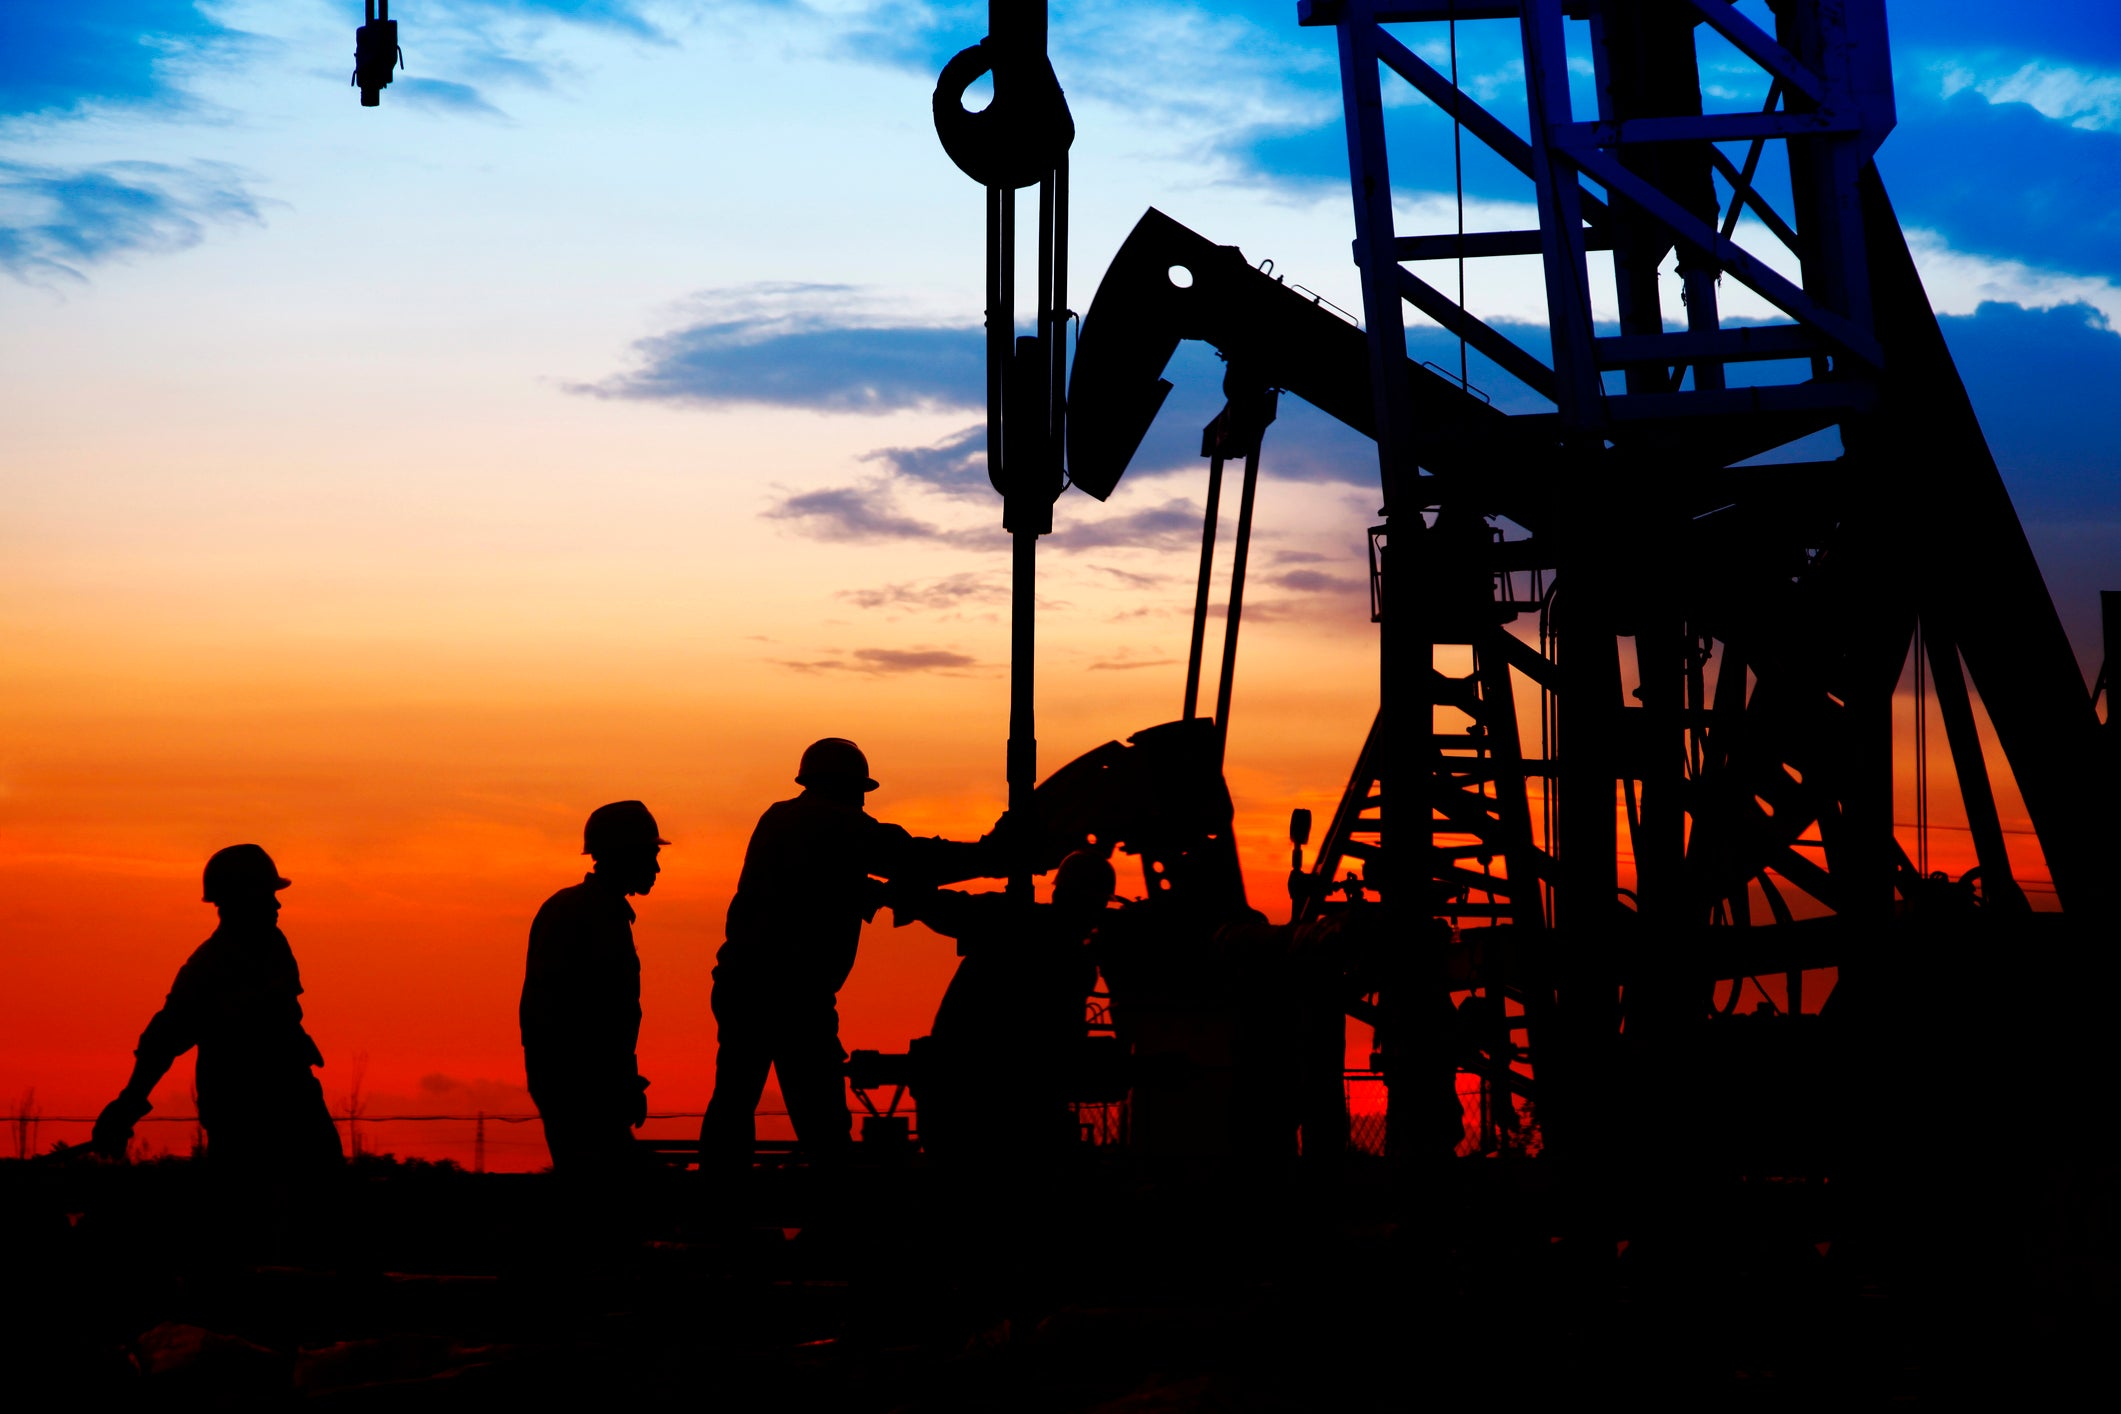 How Driller Helmerich & Payne Scored a Q1 2020 Earnings Beat | The Motley Fool